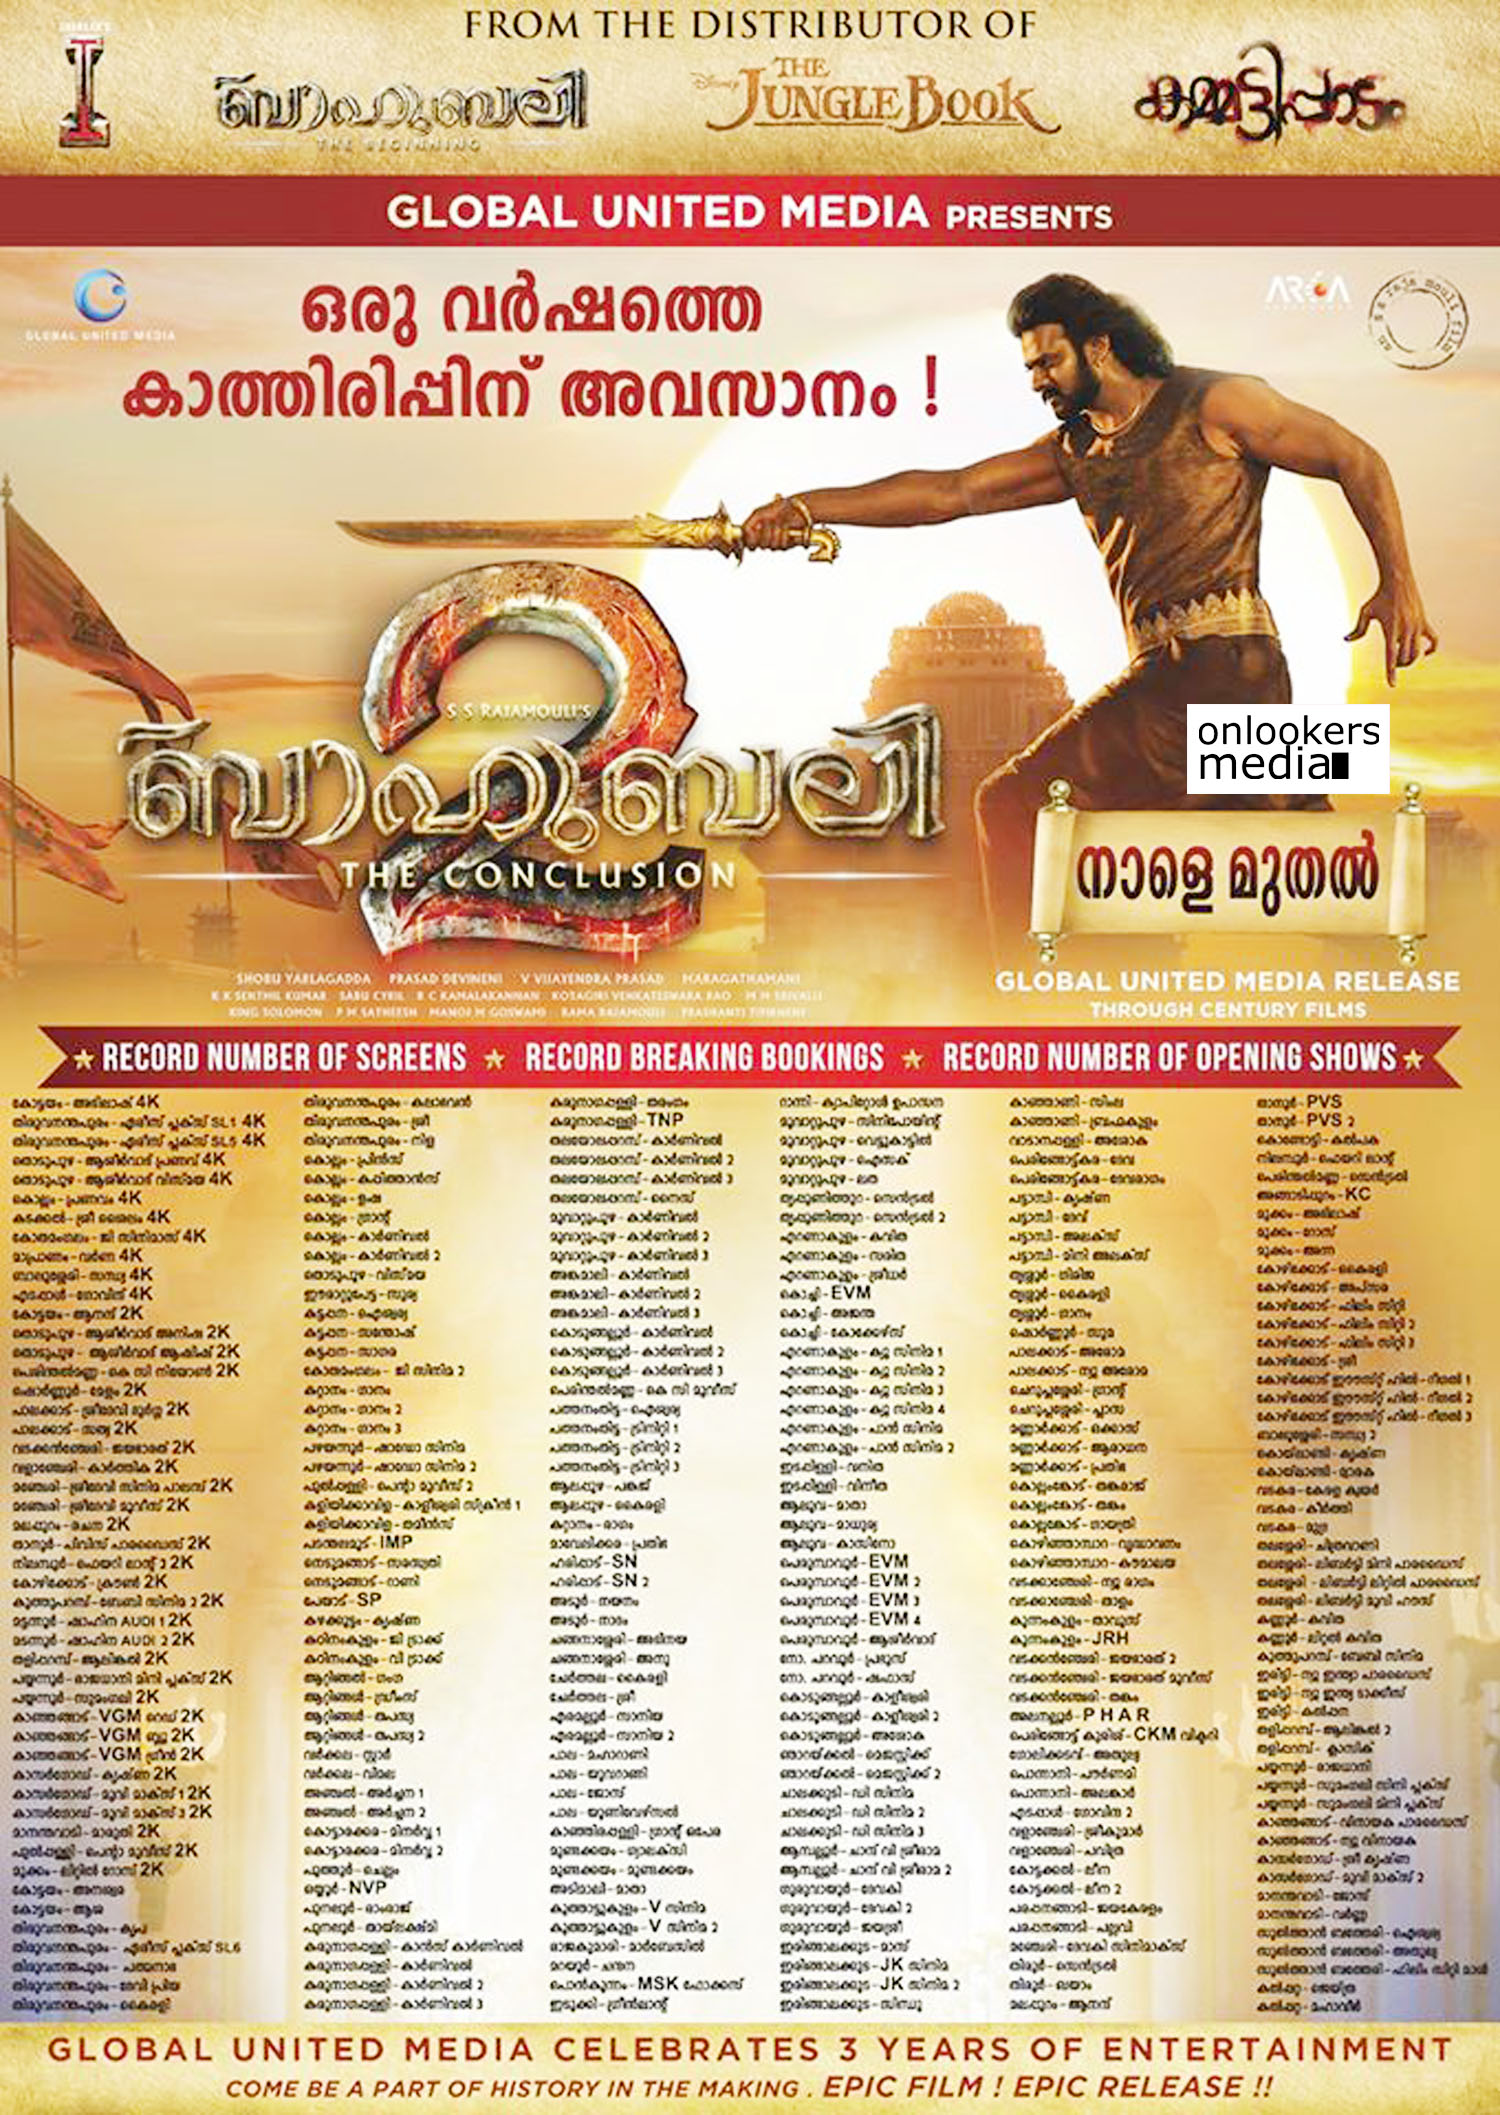 baahubali 2 latest news, baahubali 2 release, baahubali 2 kerala theatre list, latest malayalam news, baahubali 2 theatre list